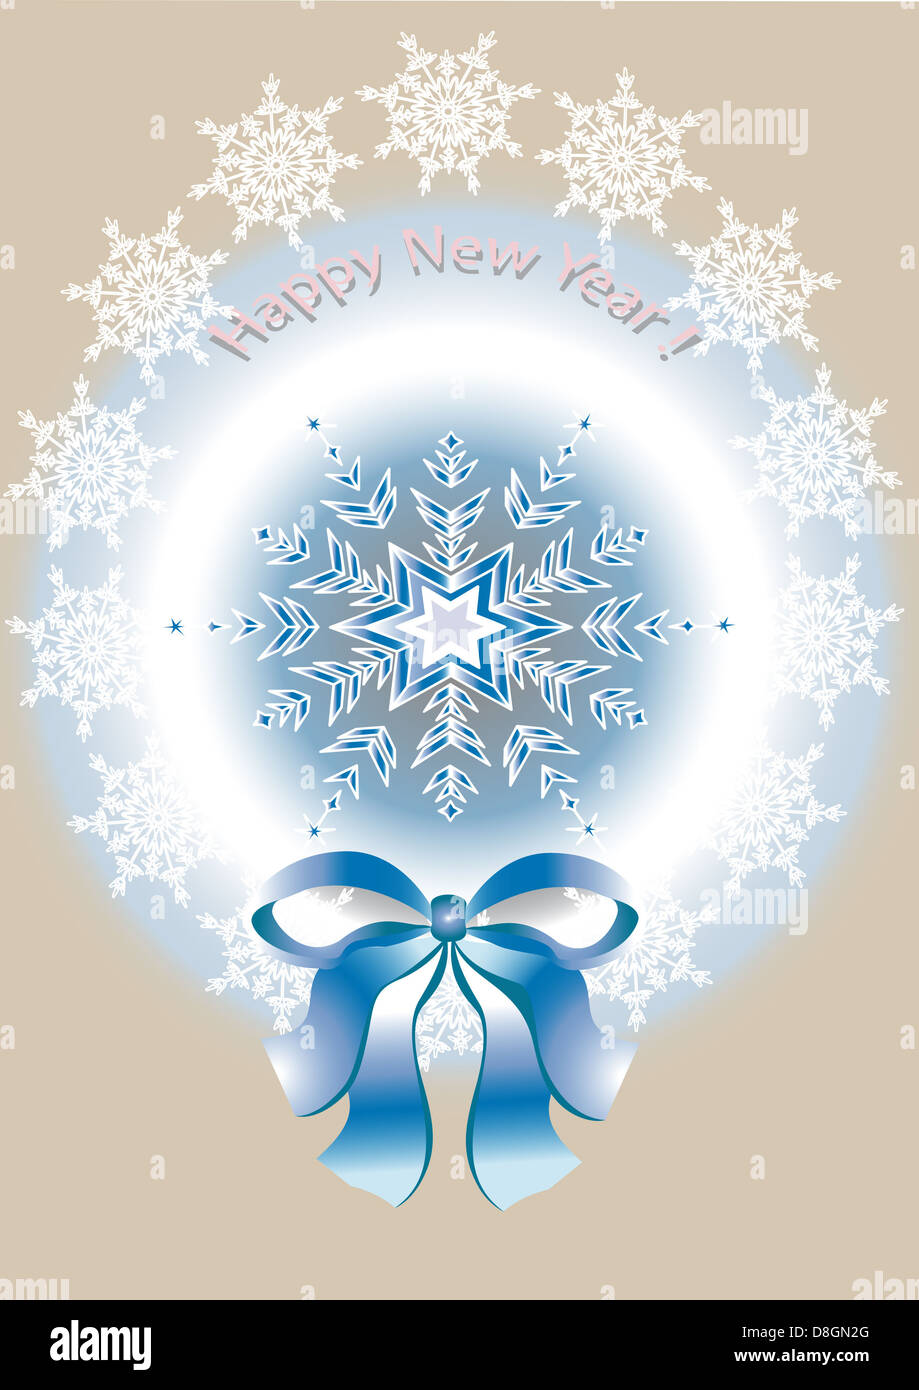 Card with the New Year and Merry Christmas - Stock Image